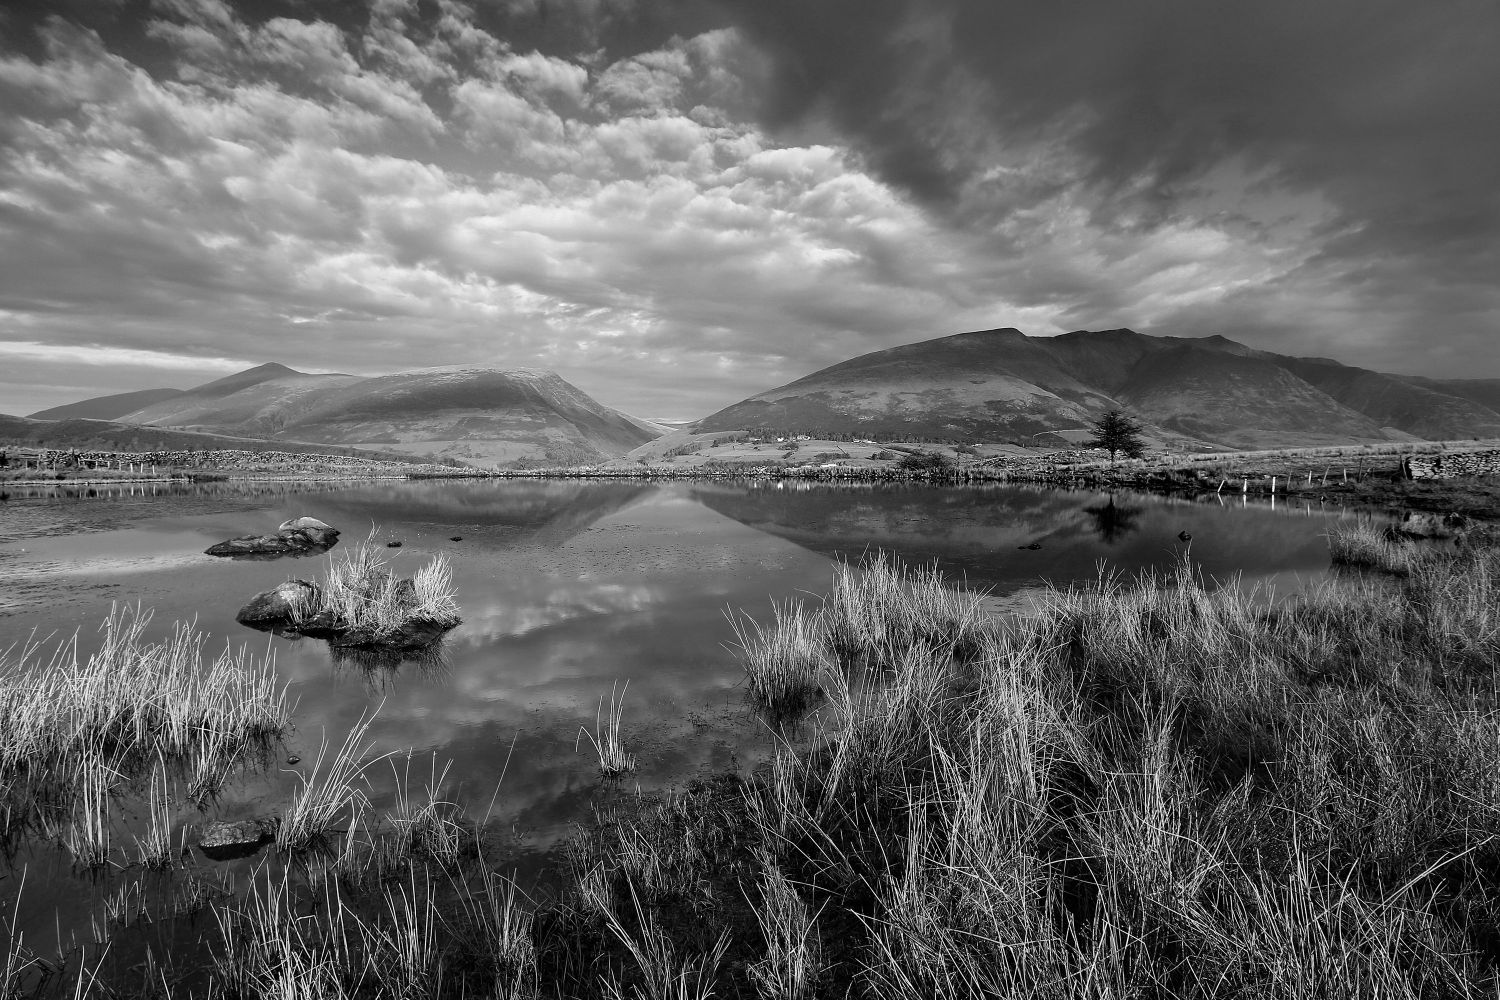 Blencathra and Skiddaw from Tewet Tarn in Black and White